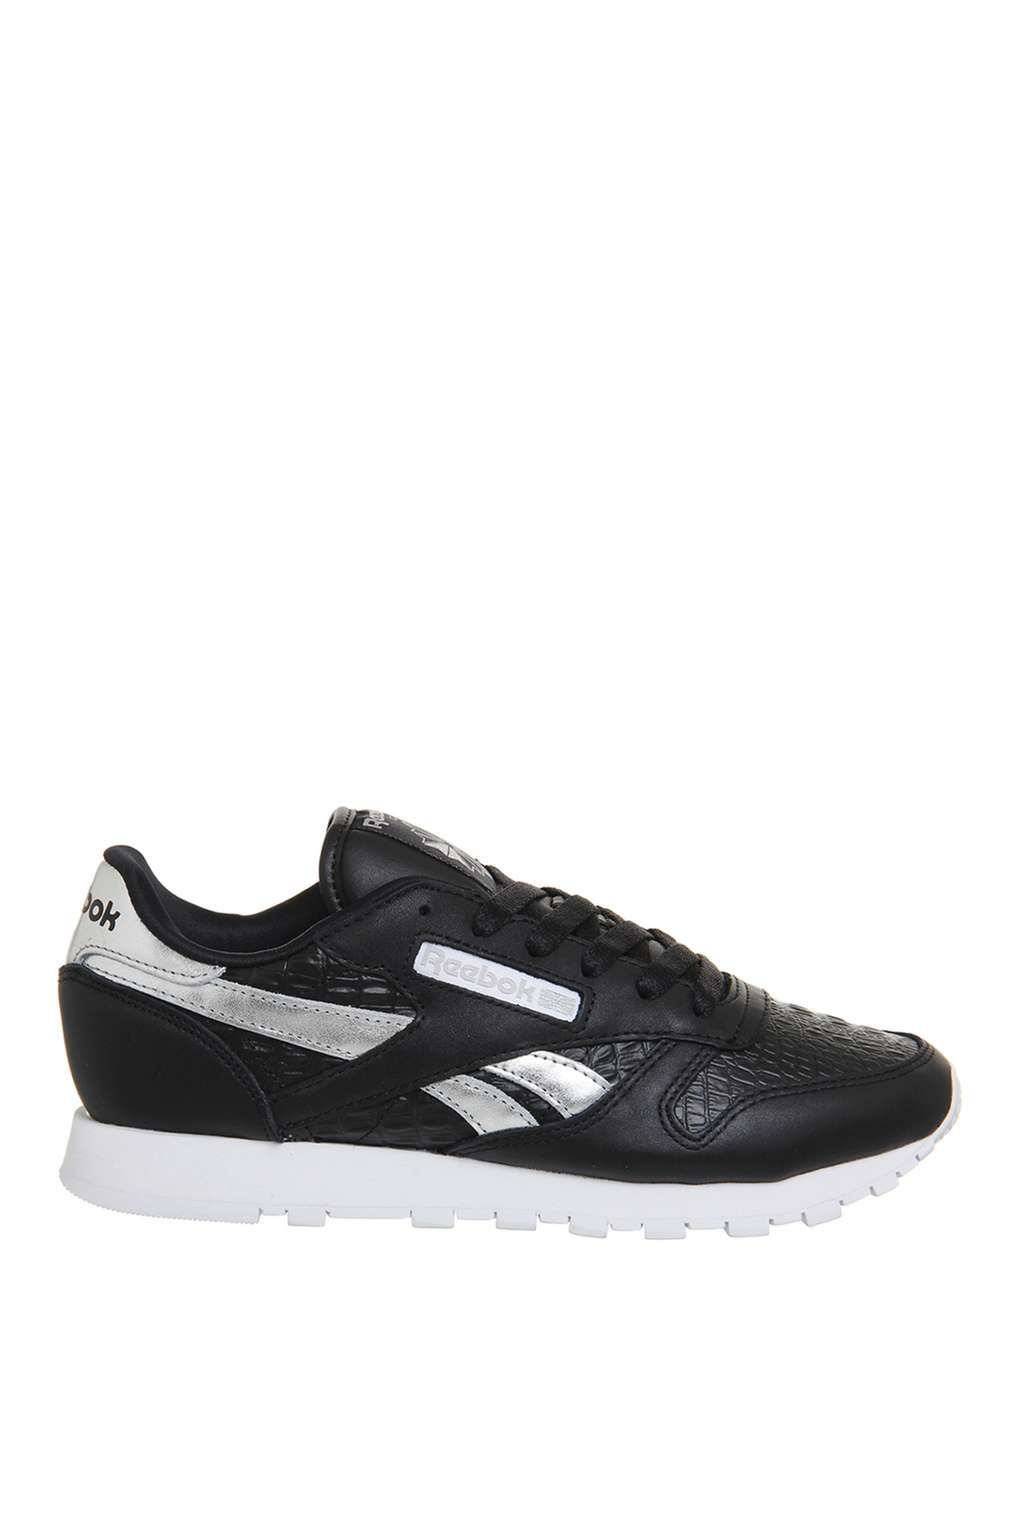 **Classic Leather Trainers by Reebok - Shoes- Topshop Europe